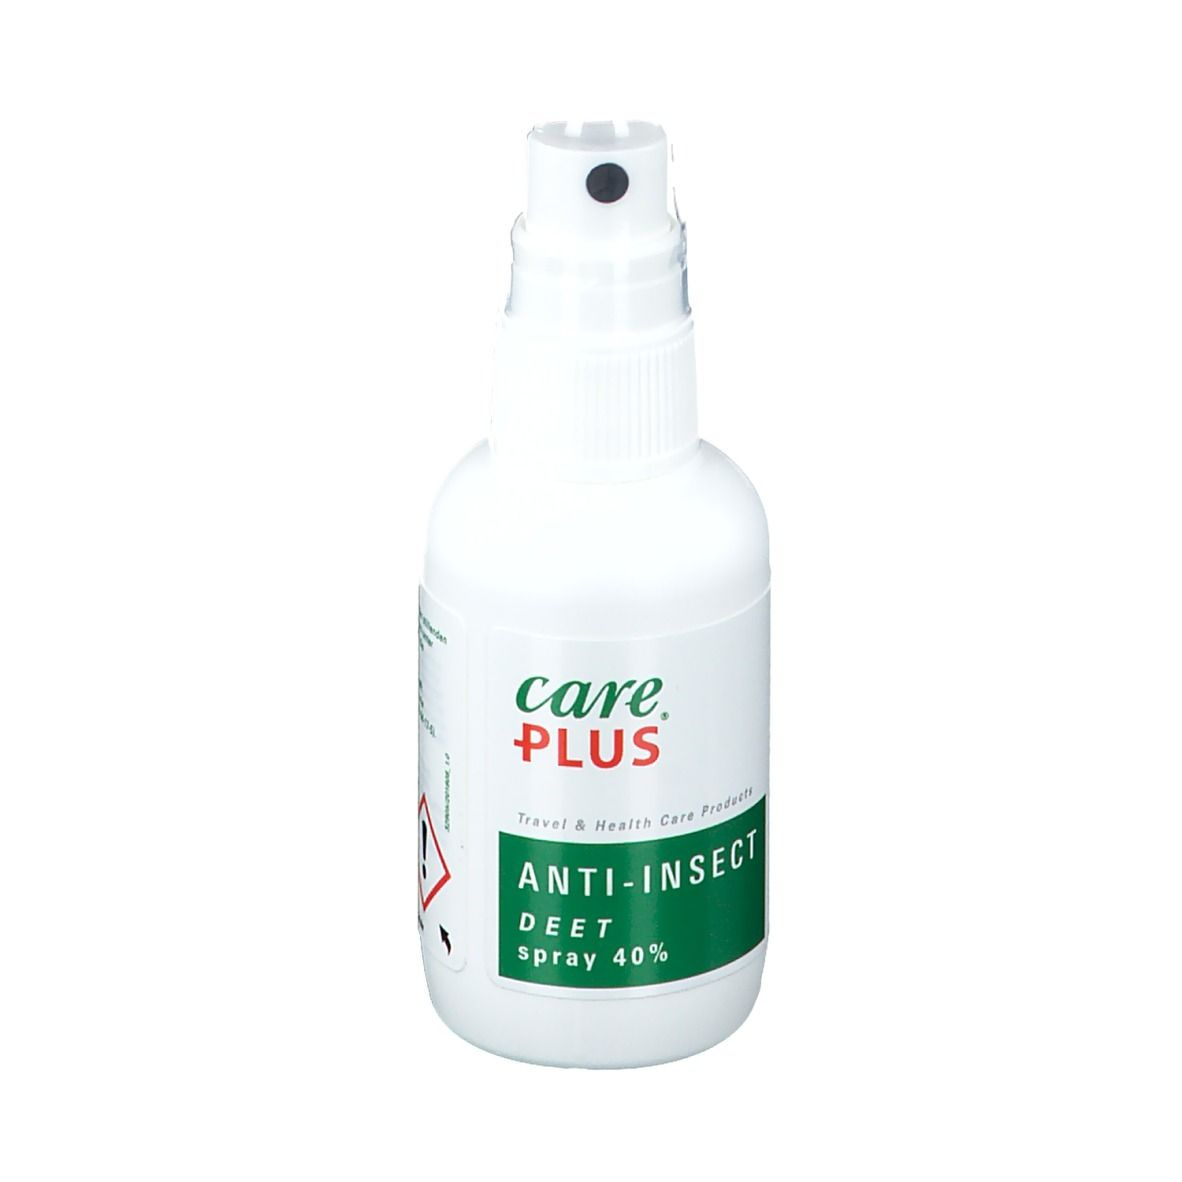 Afbeelding van Care Plus Anti-Insect spray 40 %